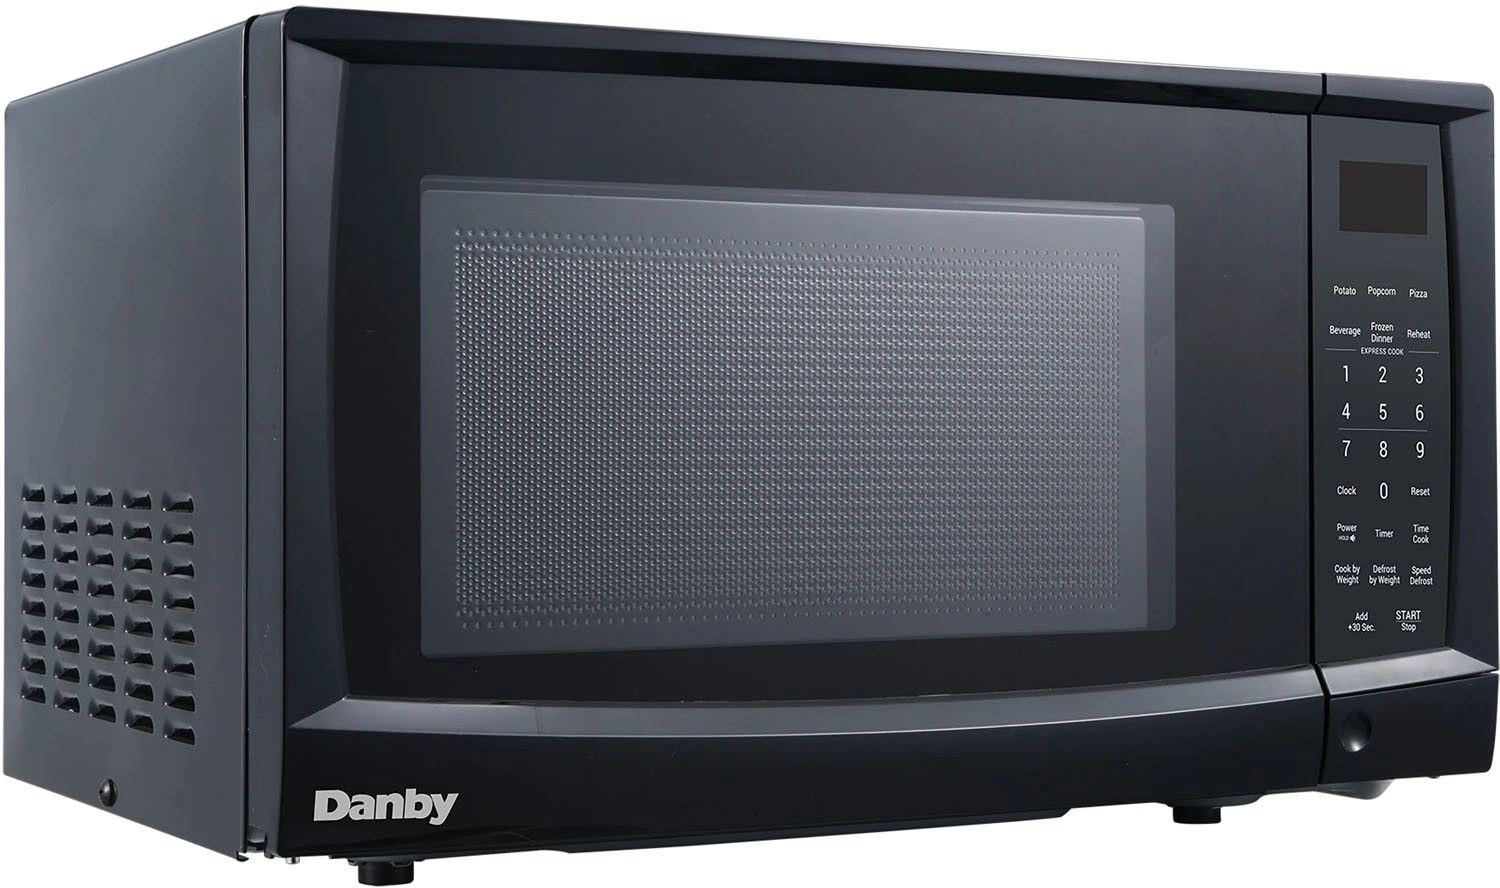 Countertop Cooking Appliances Danby Countertop Microwave Black Dmw09a2bdb Home Appliances